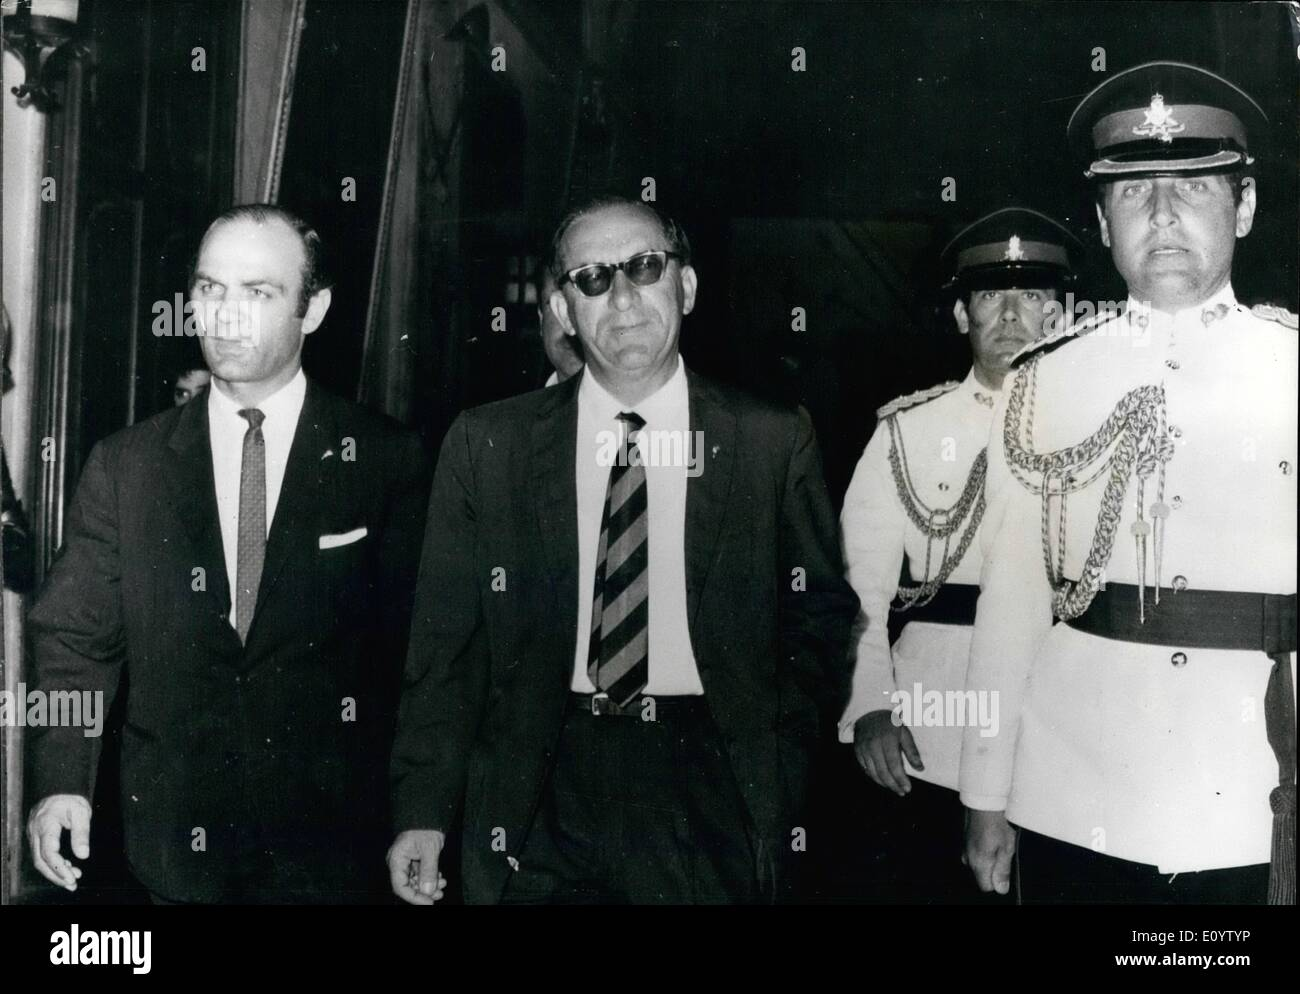 Jun. 06, 1971 - New Premier of Malta Sacks Governor.: Sir Maurice Dorman, 58, resigned yesterday as Governor-General of Malta. This is one of the latest consequences of the one-seat electoral victory by Mr. Dom Mintooff, the Labour Prime Minister, who has said he will scrap the defence and aid treaty with Britain. Before the election he gave a warning that the Governor-General should be a Maltese. In the first few days of his new administration Mr. Mintoff had already dismissed five of the six diplomats who served abroad for Dr. Borg Olivier, the ousted Nationalist Prime Minister - Stock Image